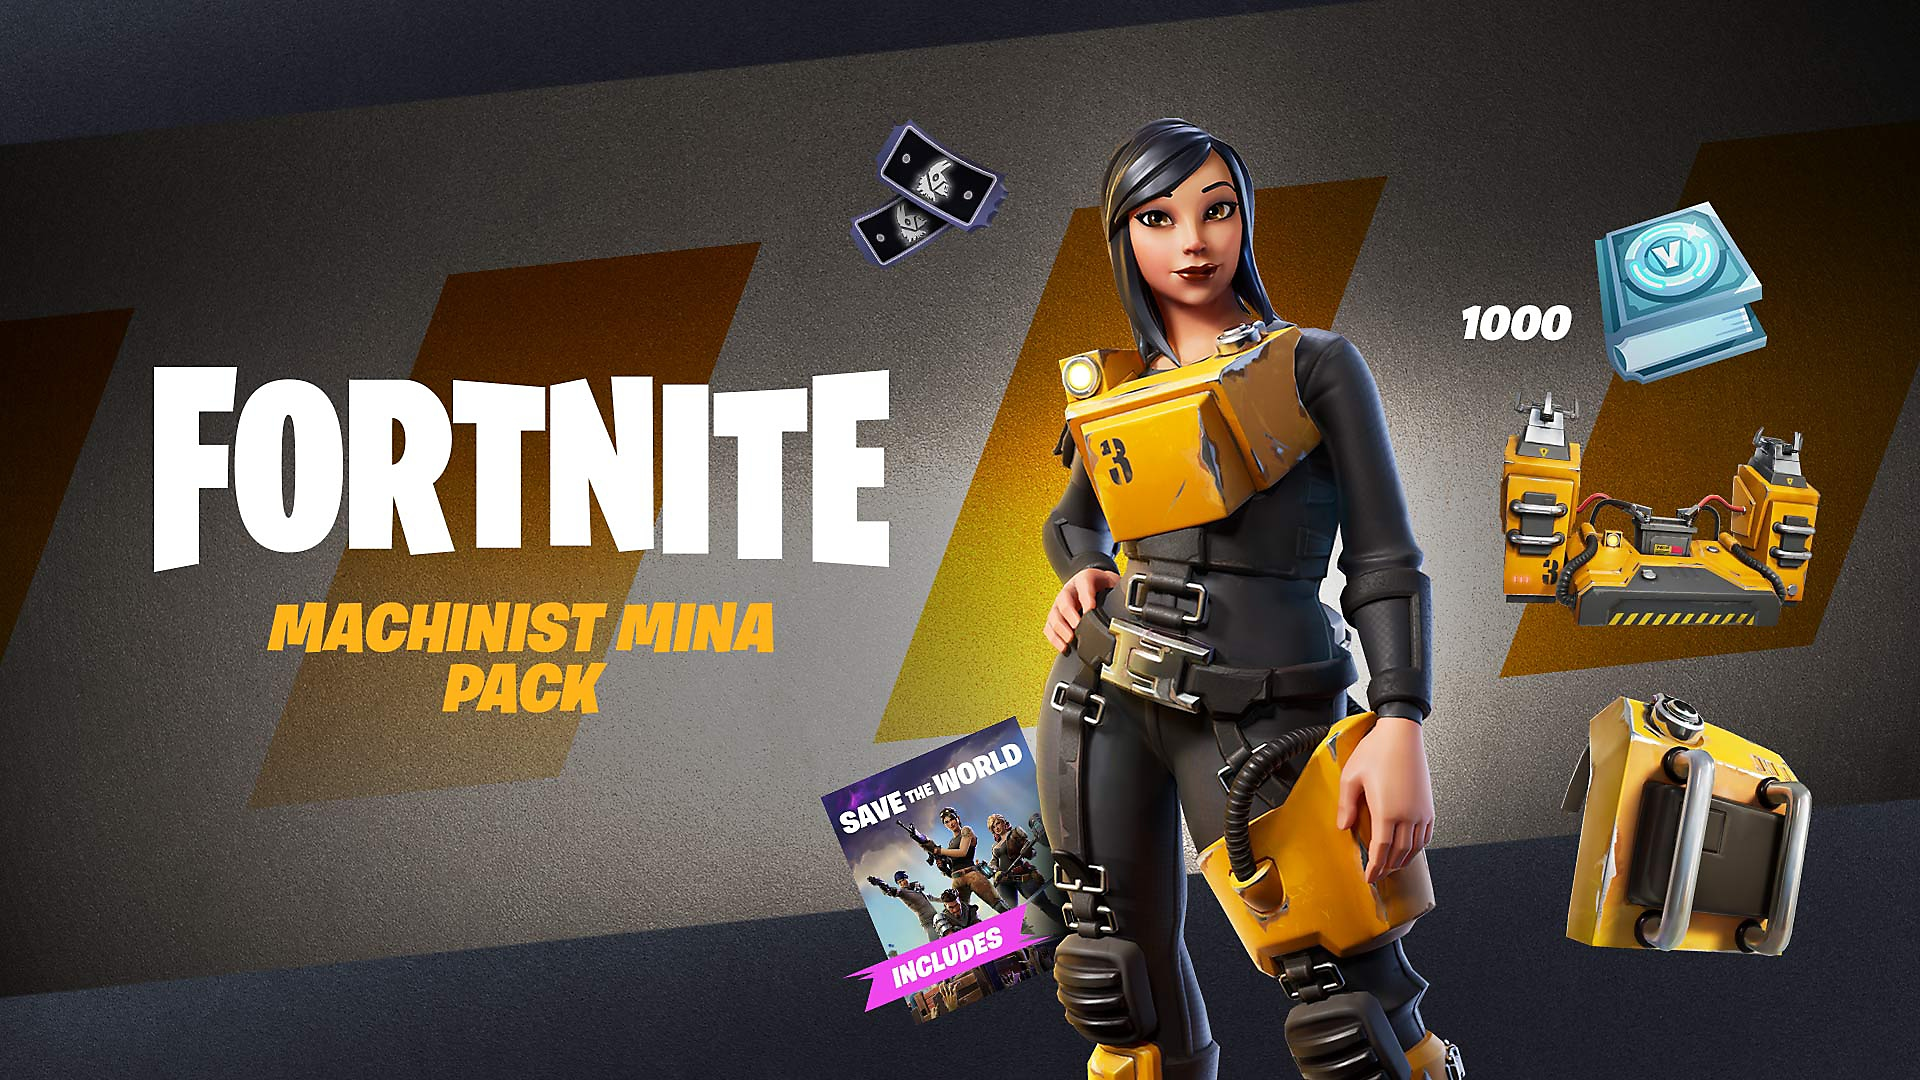 Fortnite - Powerhouse Pack - Store Art